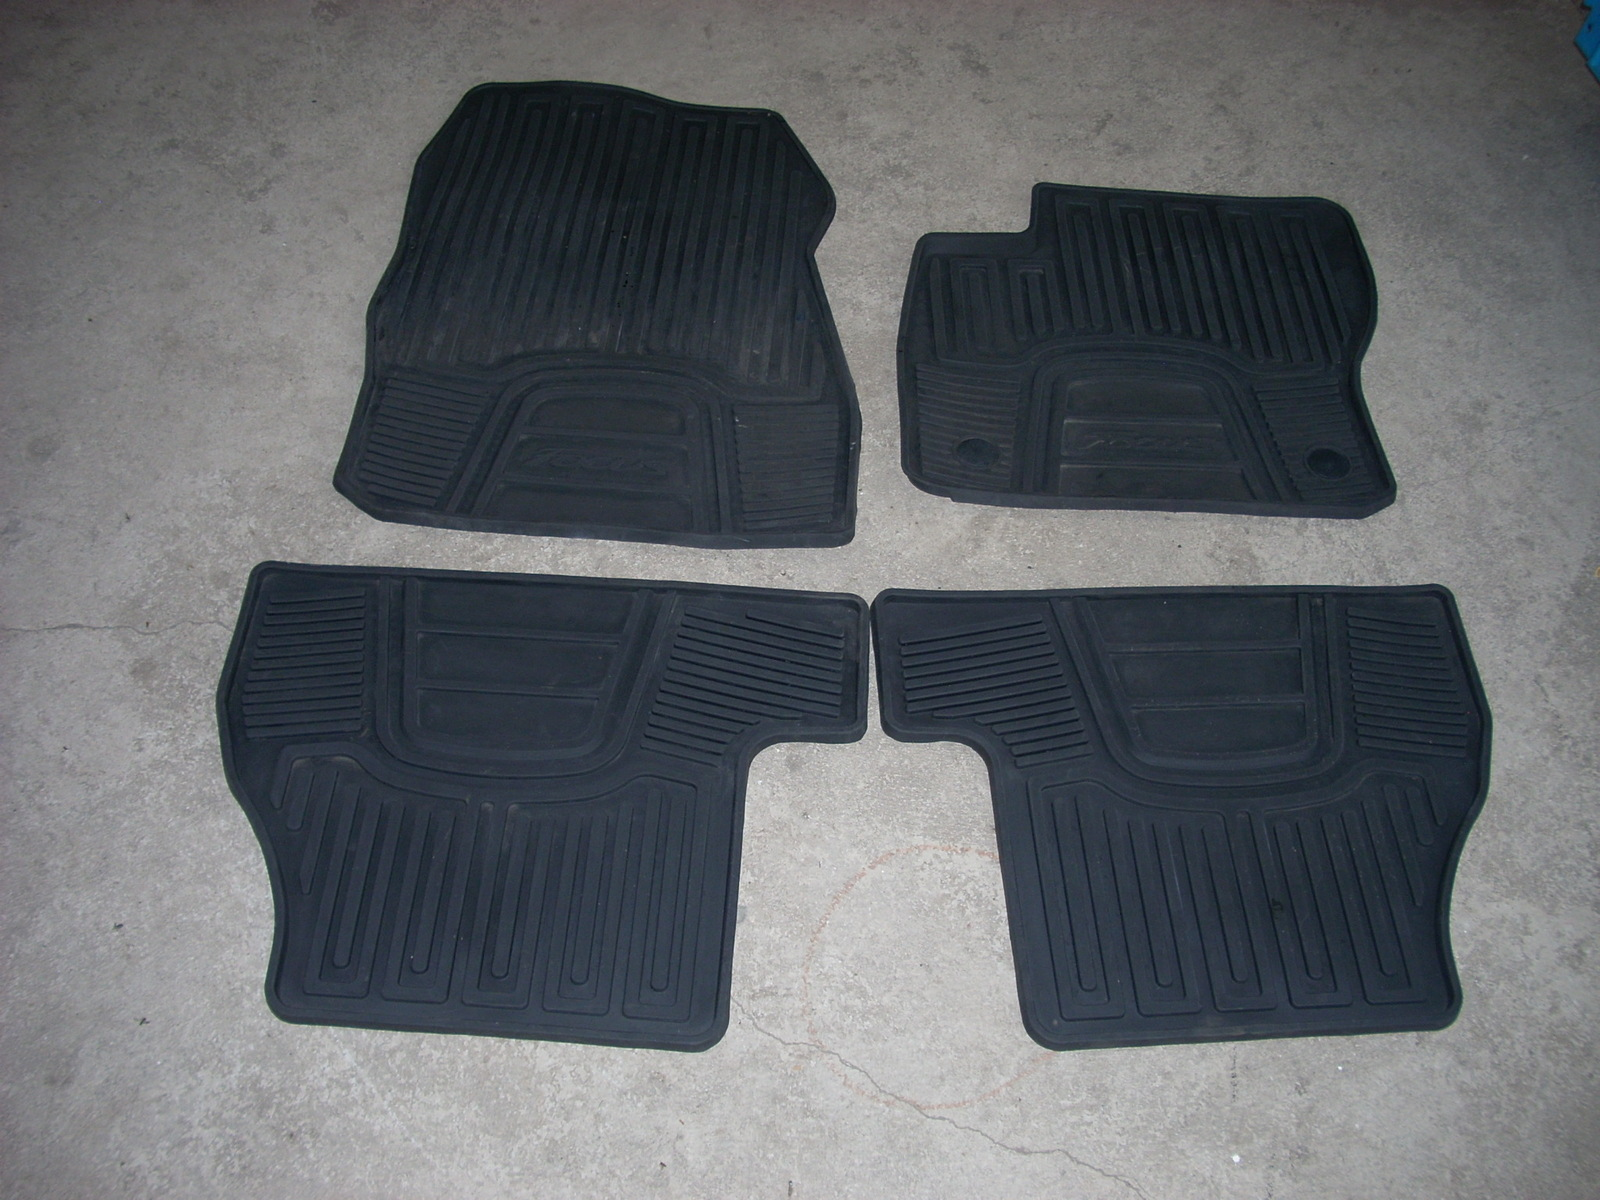 2013 FORD FOCUS FLOOR MATS